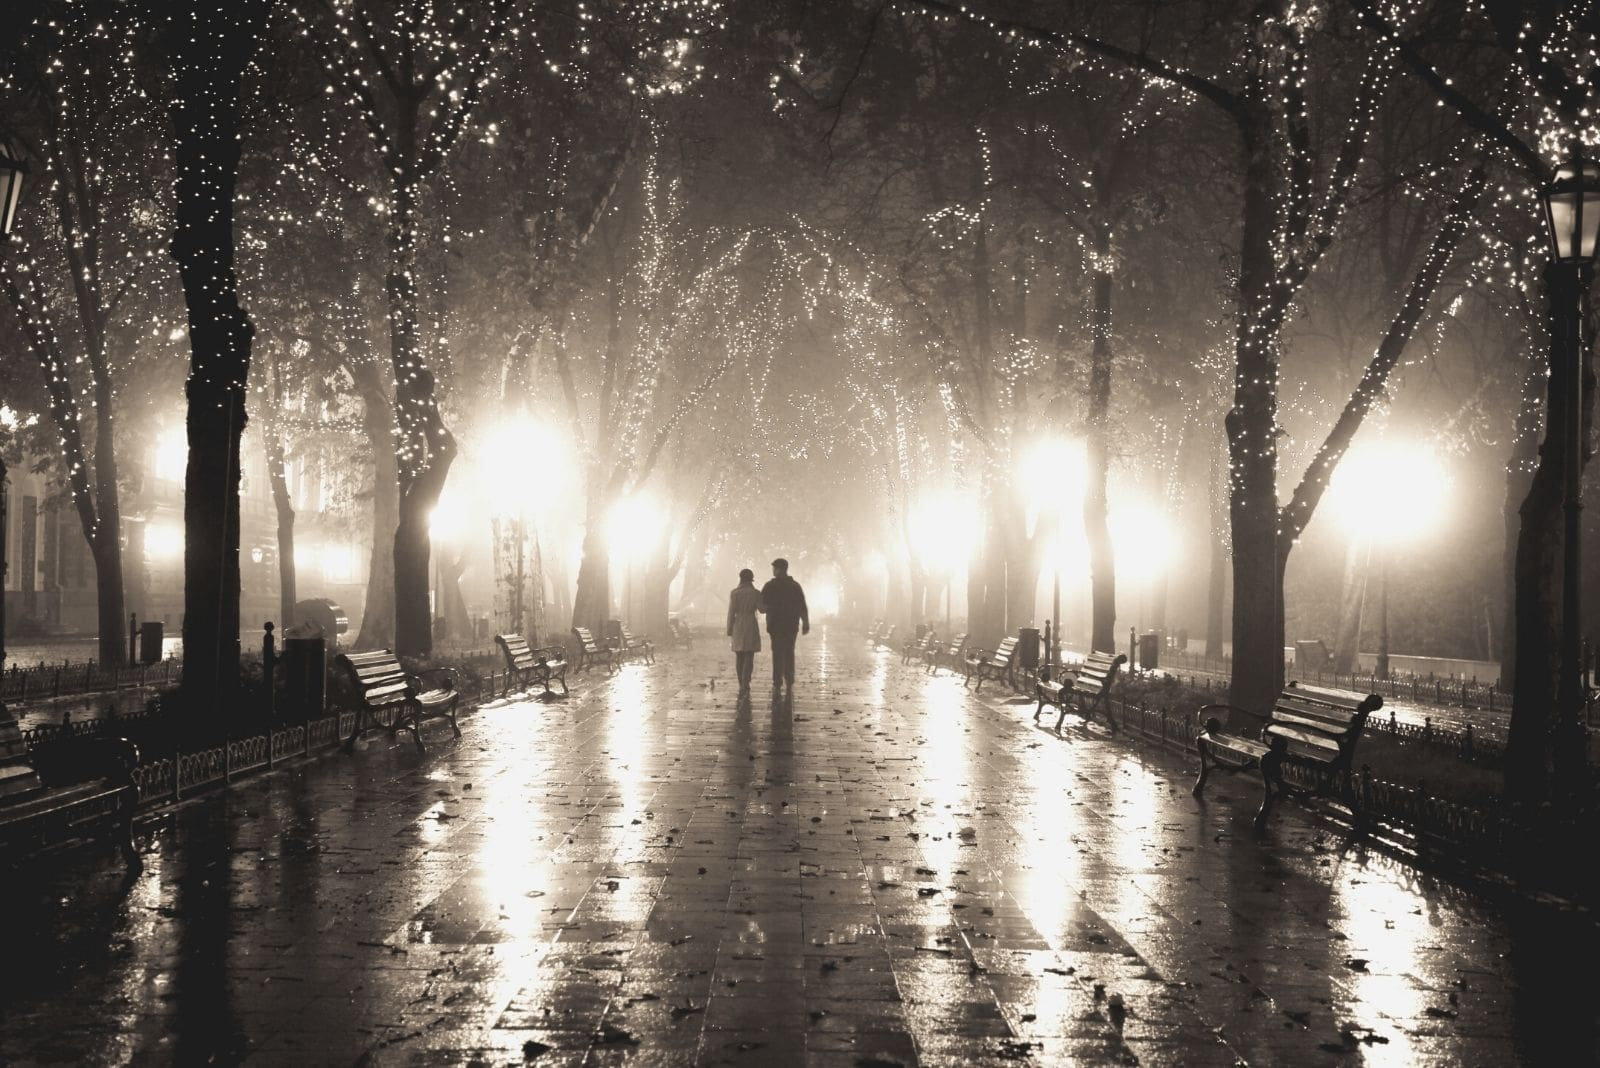 couple walkin at alley in night lights in a distant